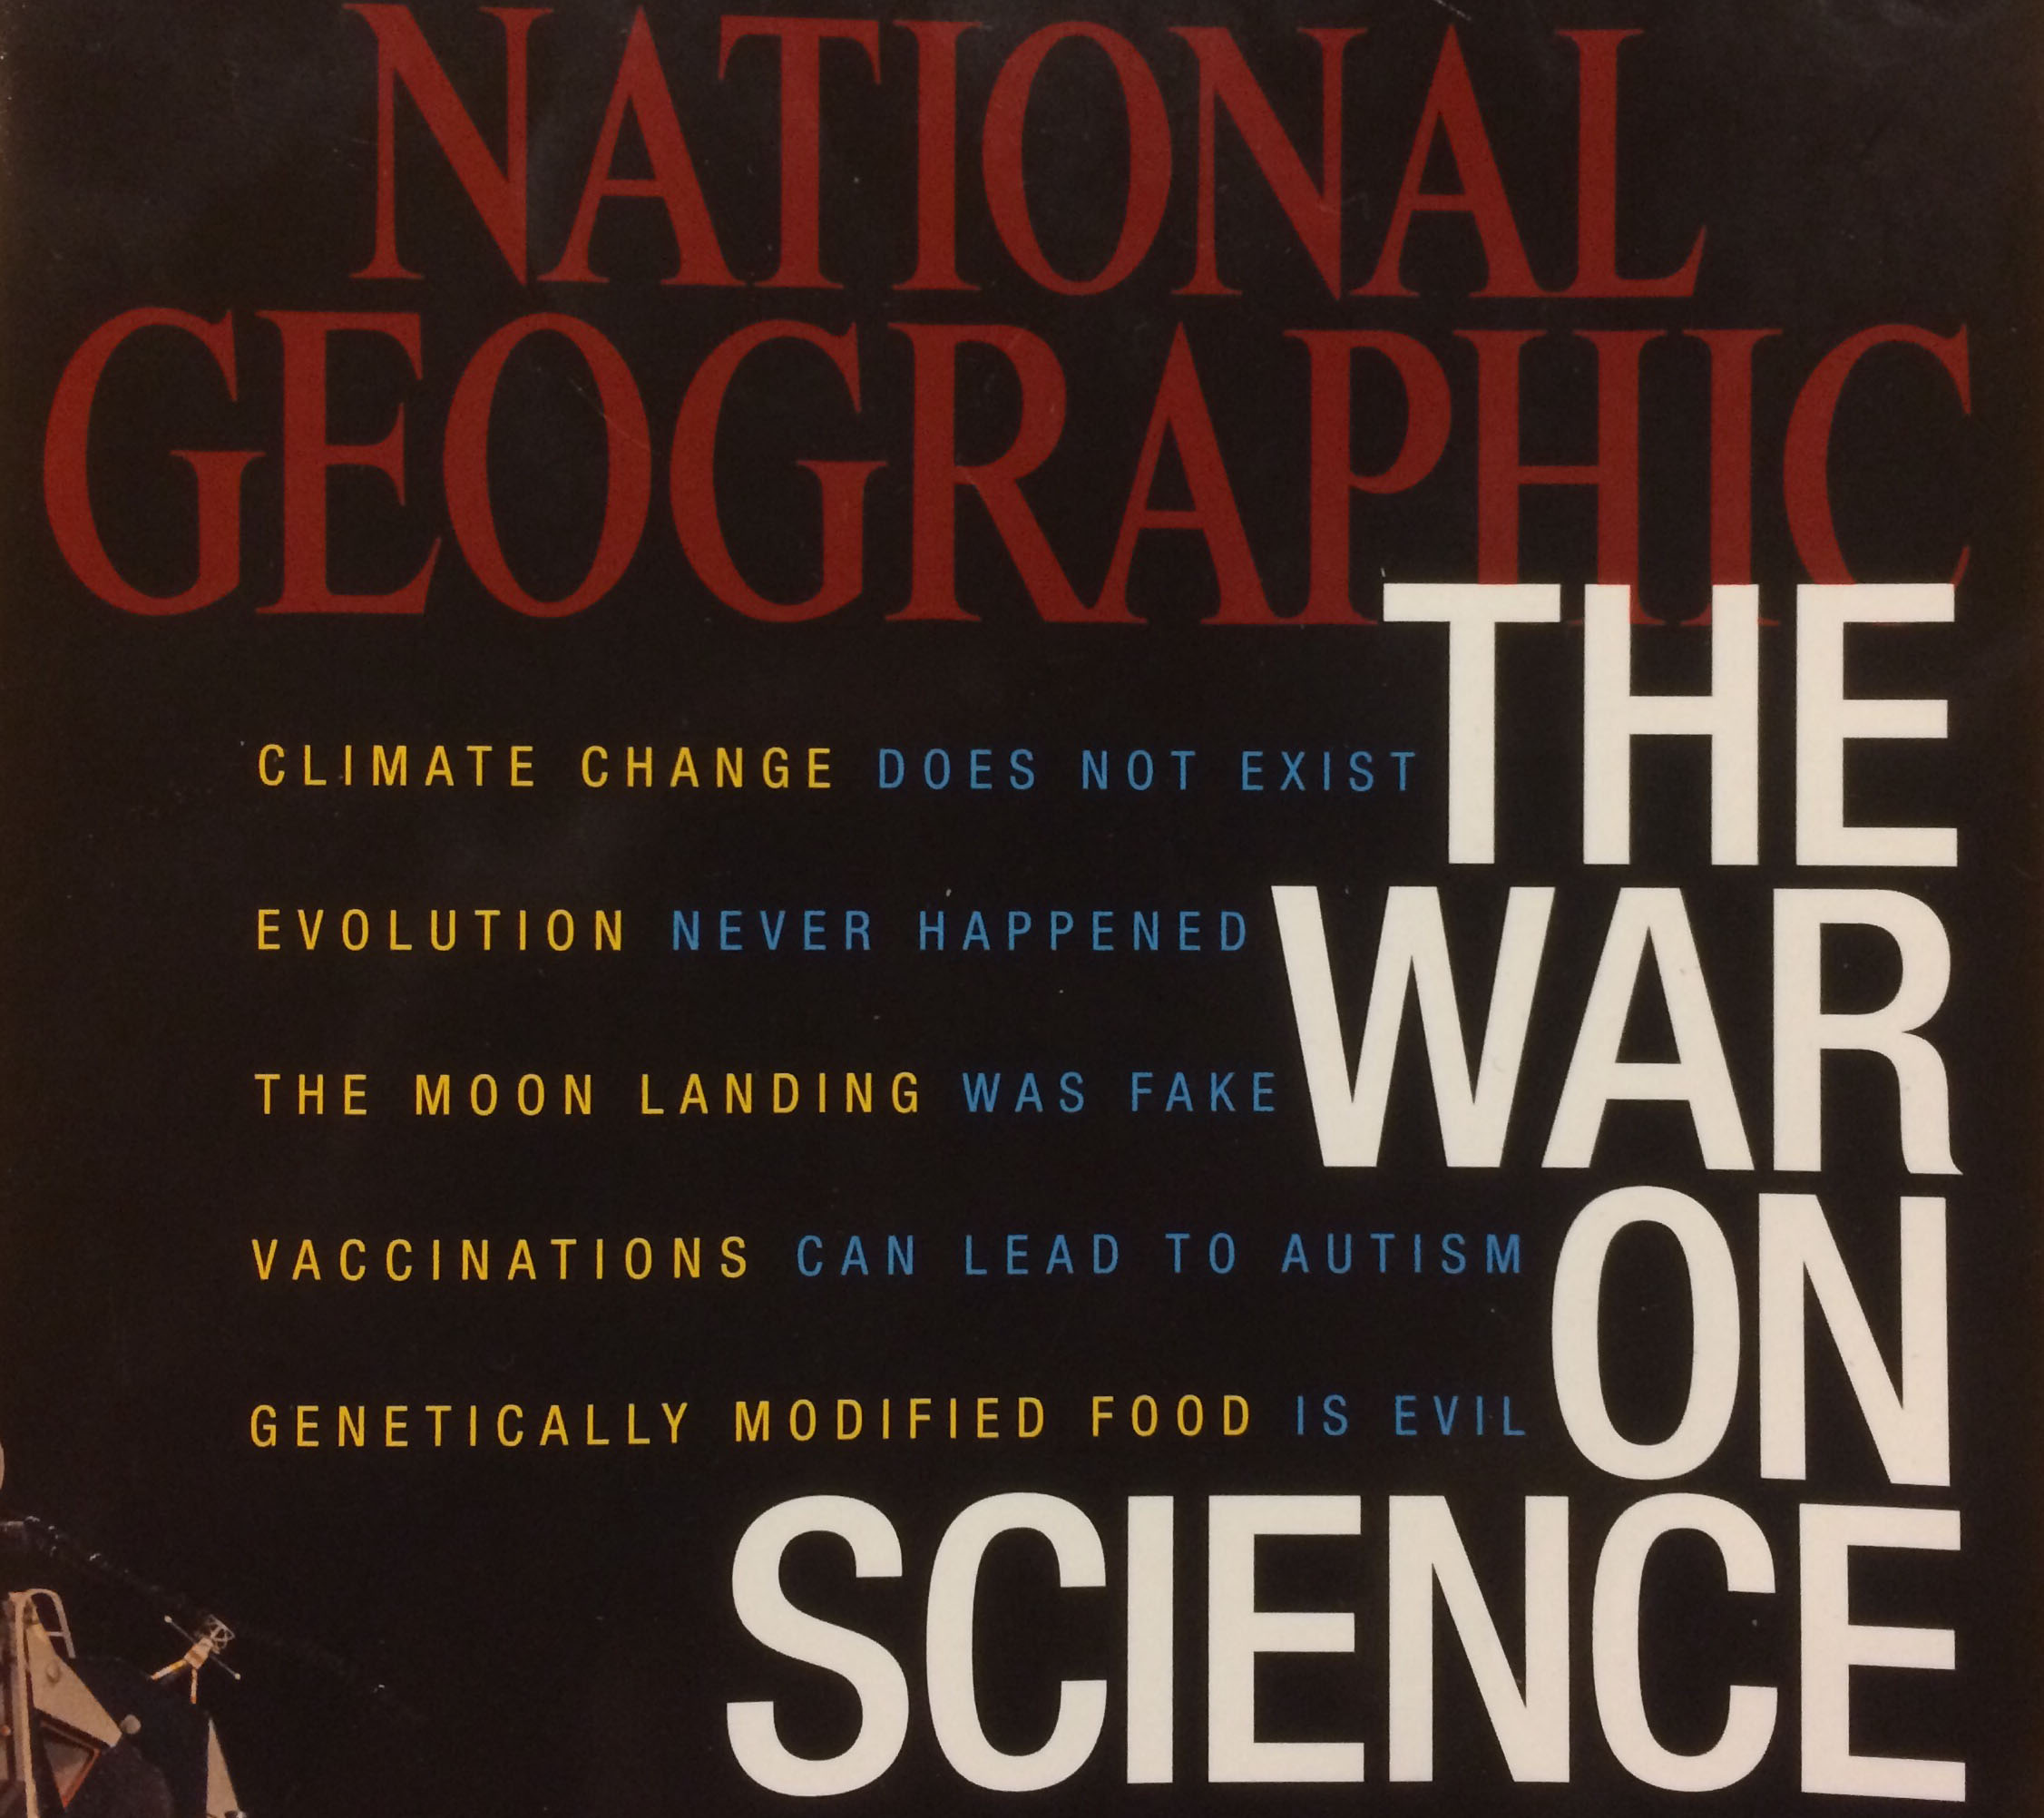 <p>National Geographic's March 2015 cover story: The War On Science.</p>